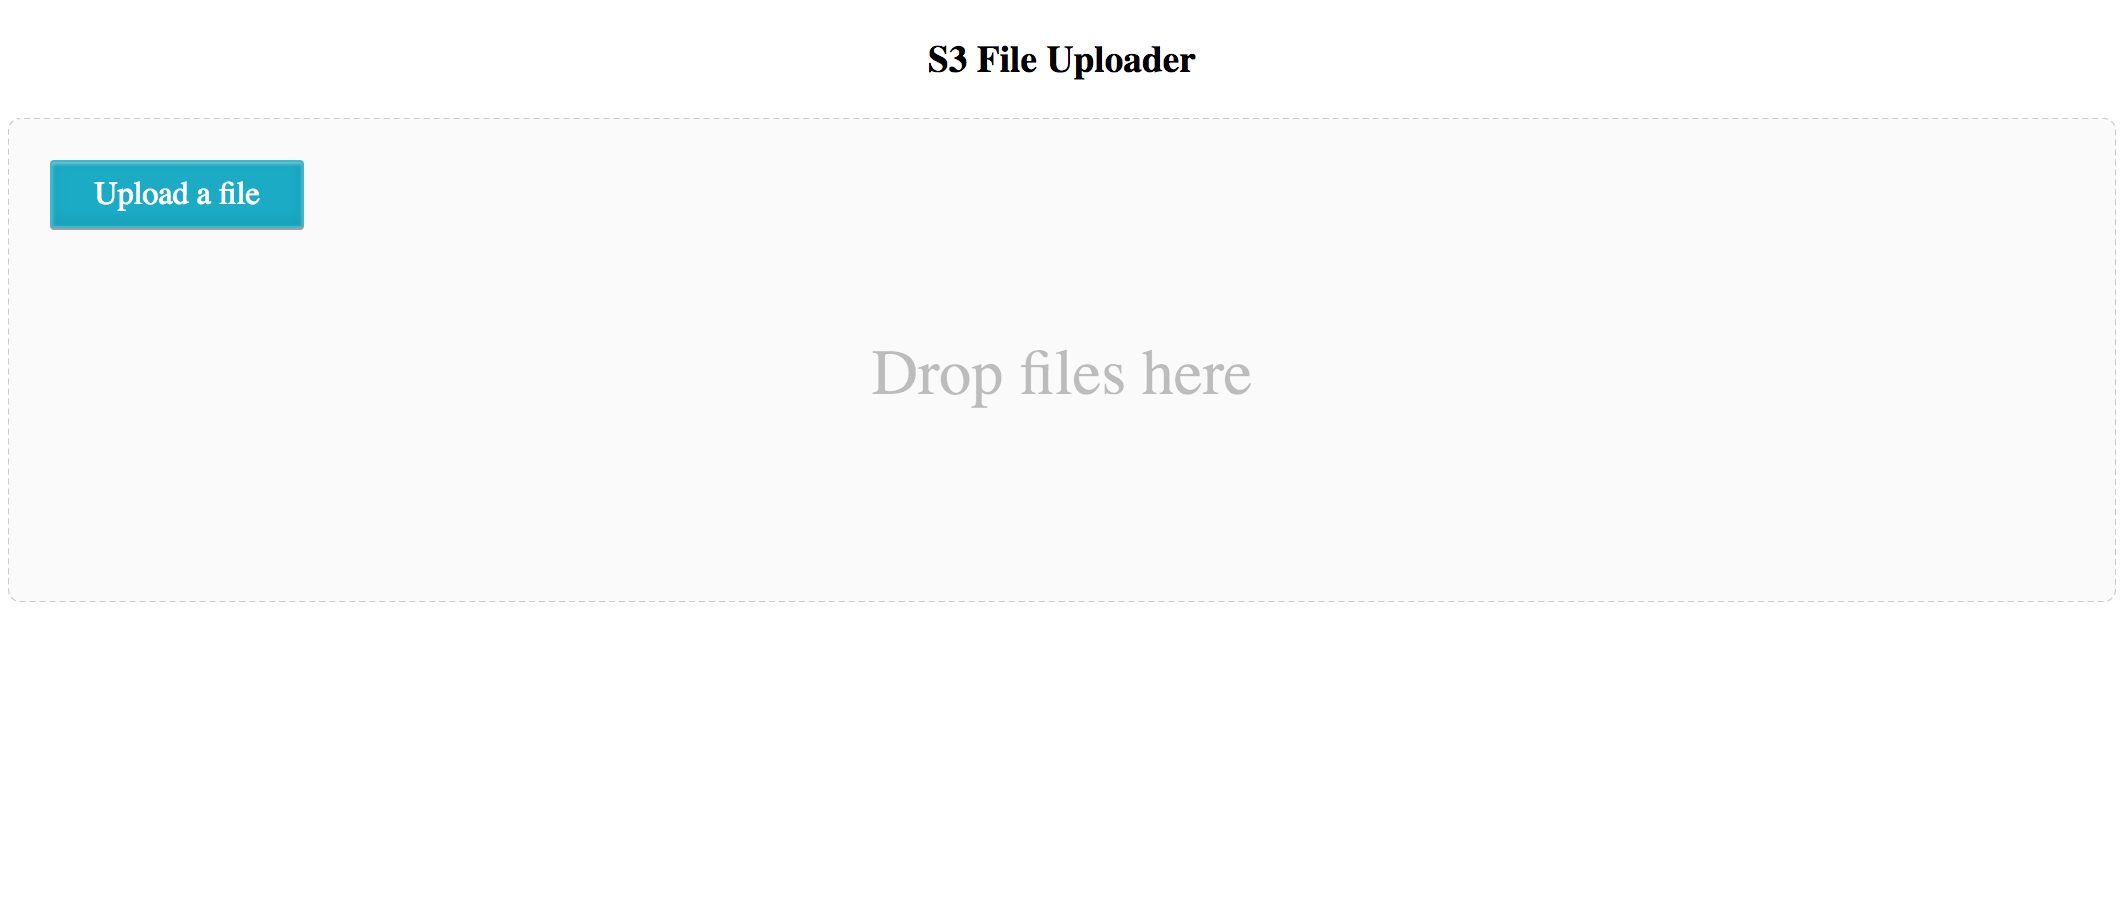 S3 File Uploader - Simply Drag and Drop Your Files To Upload Into The Cloud